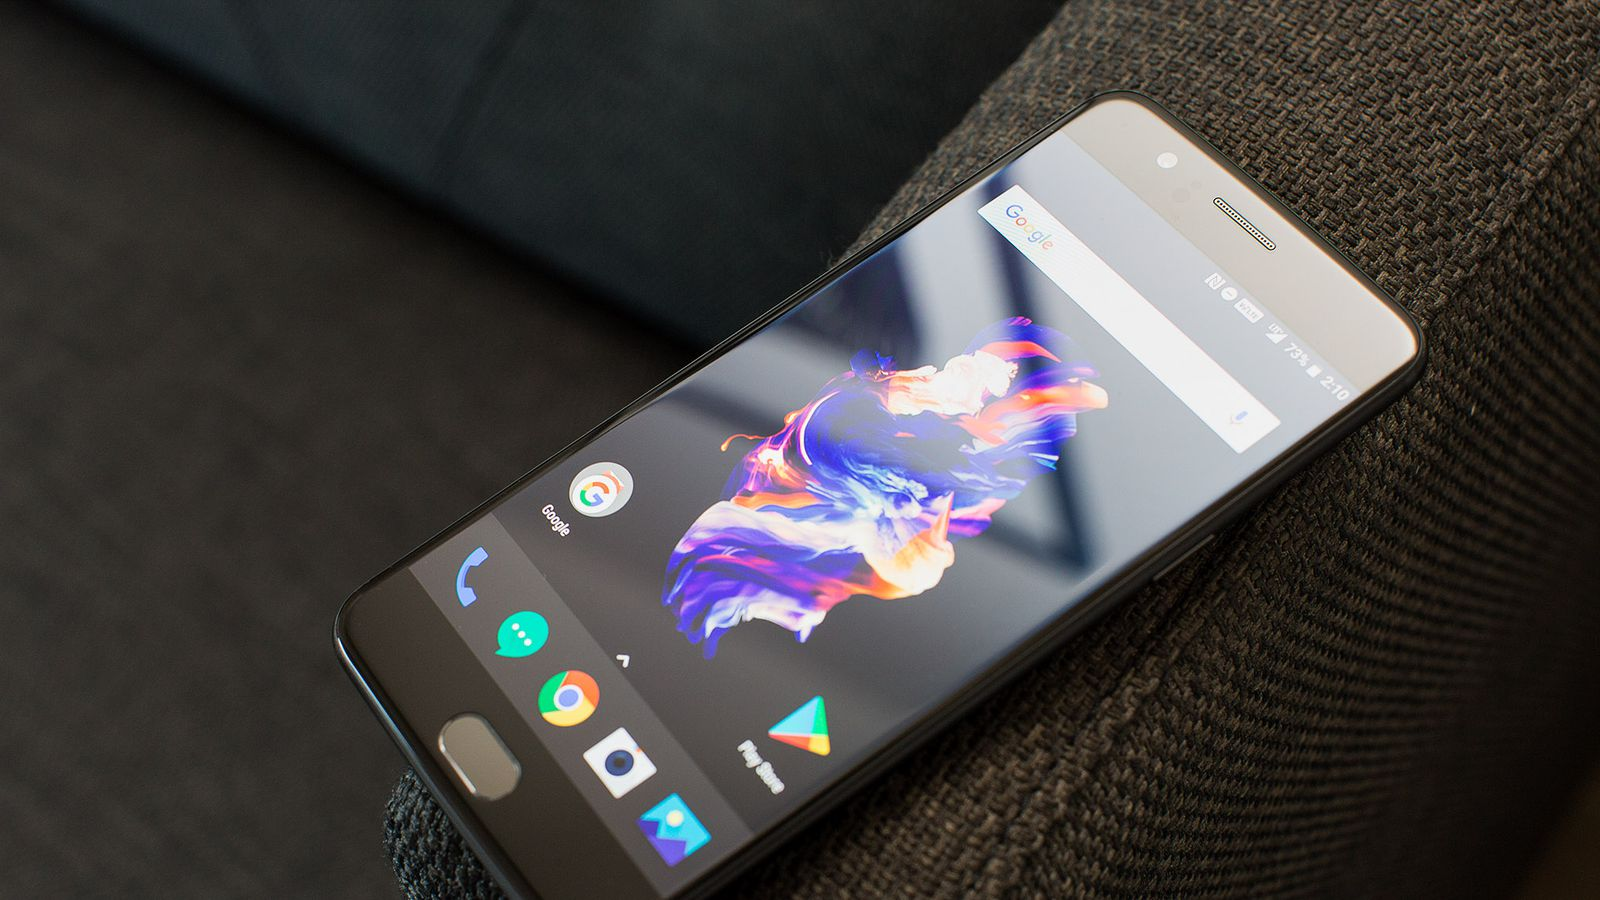 OnePlus focuses on the next frontier - The Verge